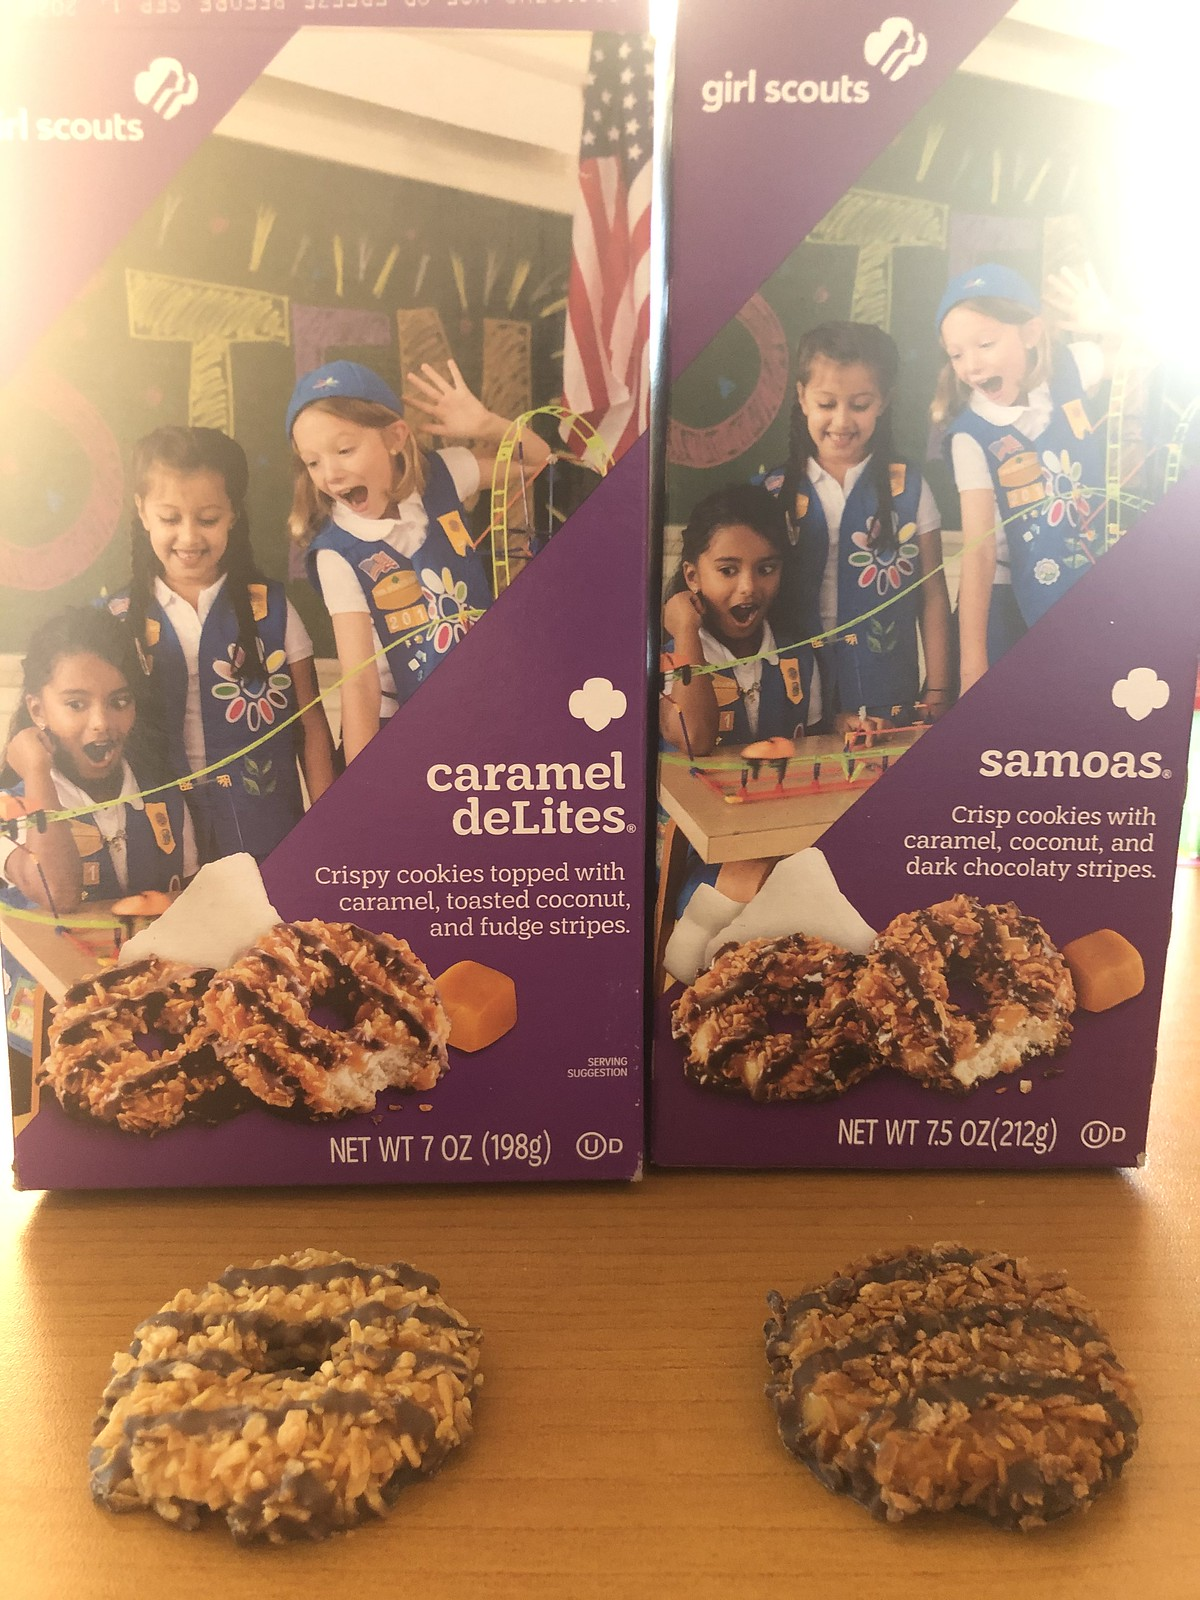 ABC GIRL SCOUT COOKIES